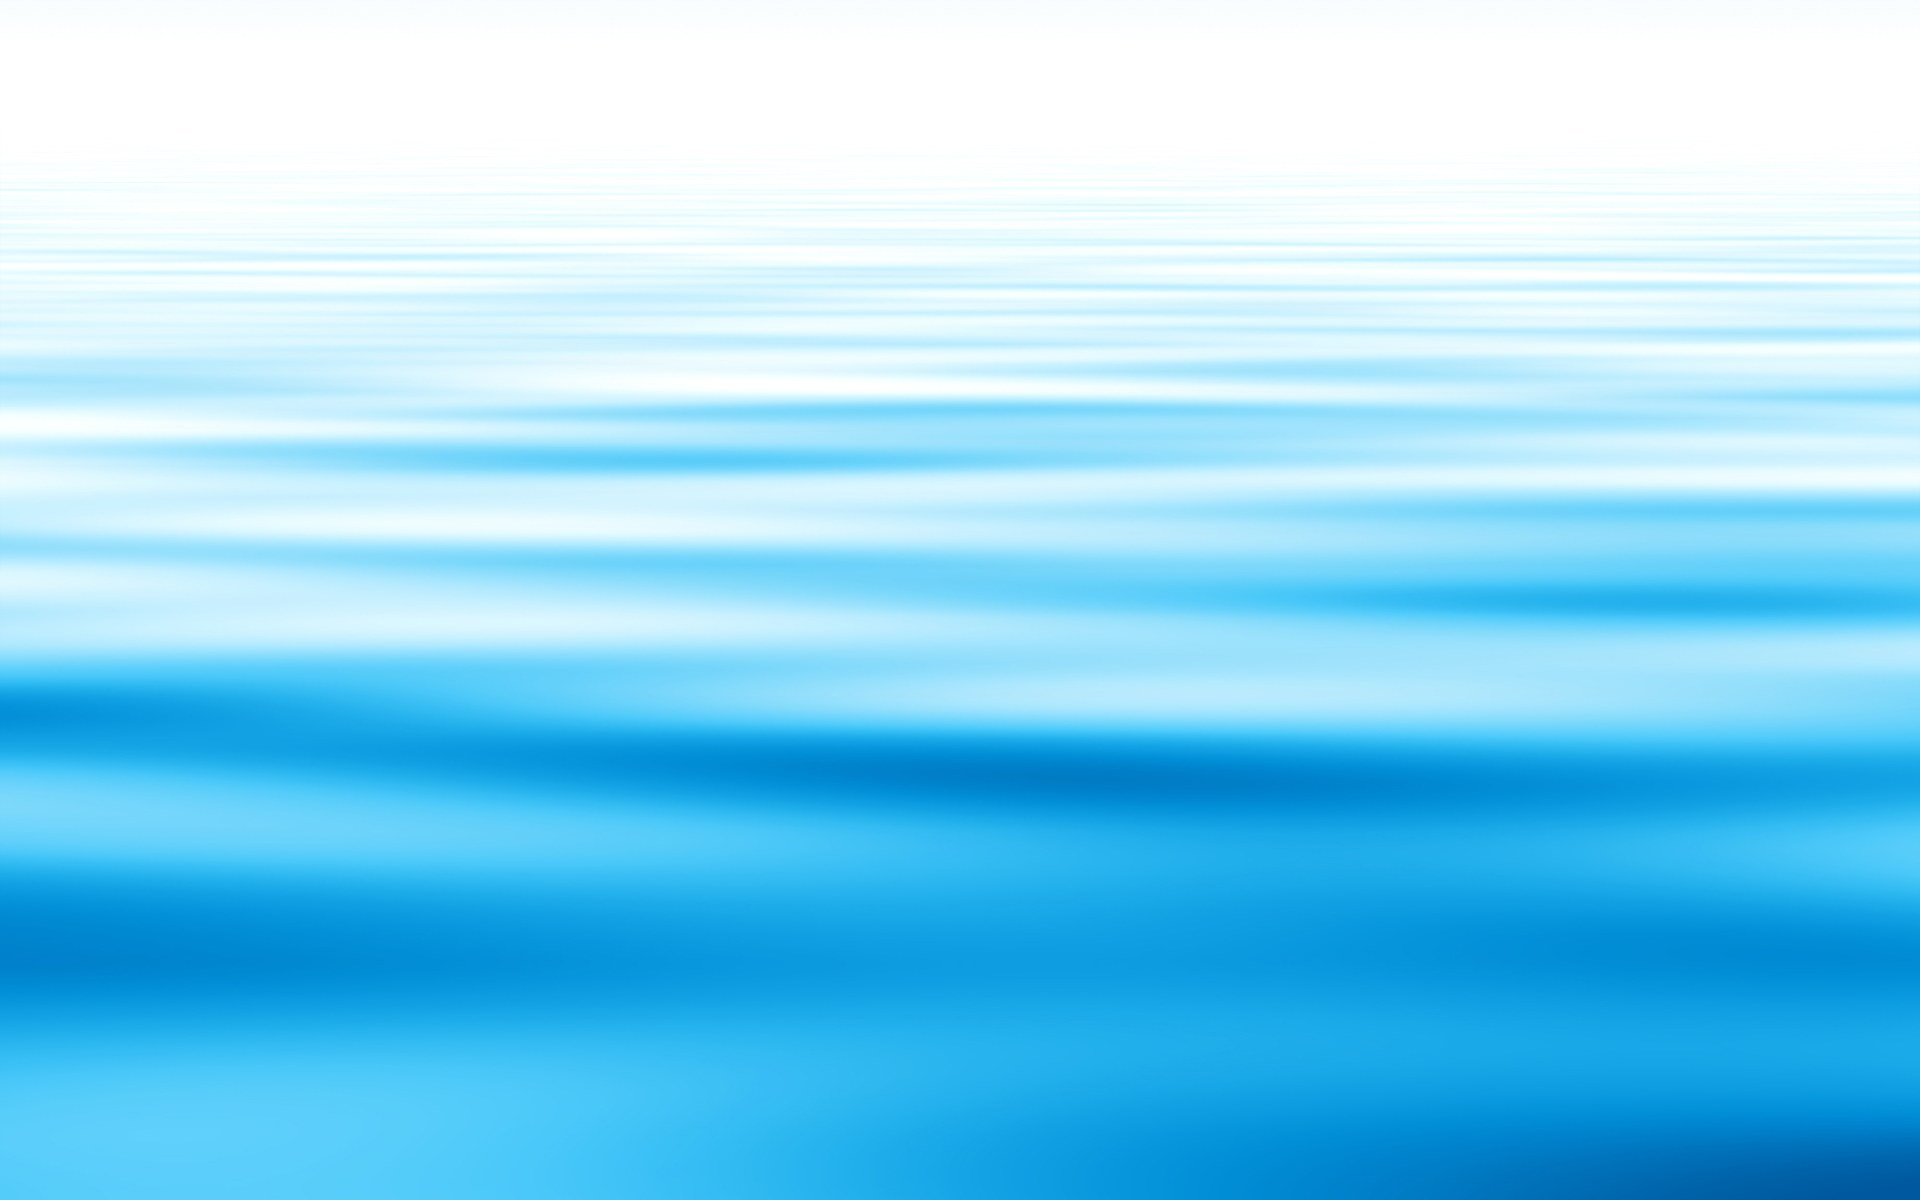 sea water, light blue powerpoint background #3757